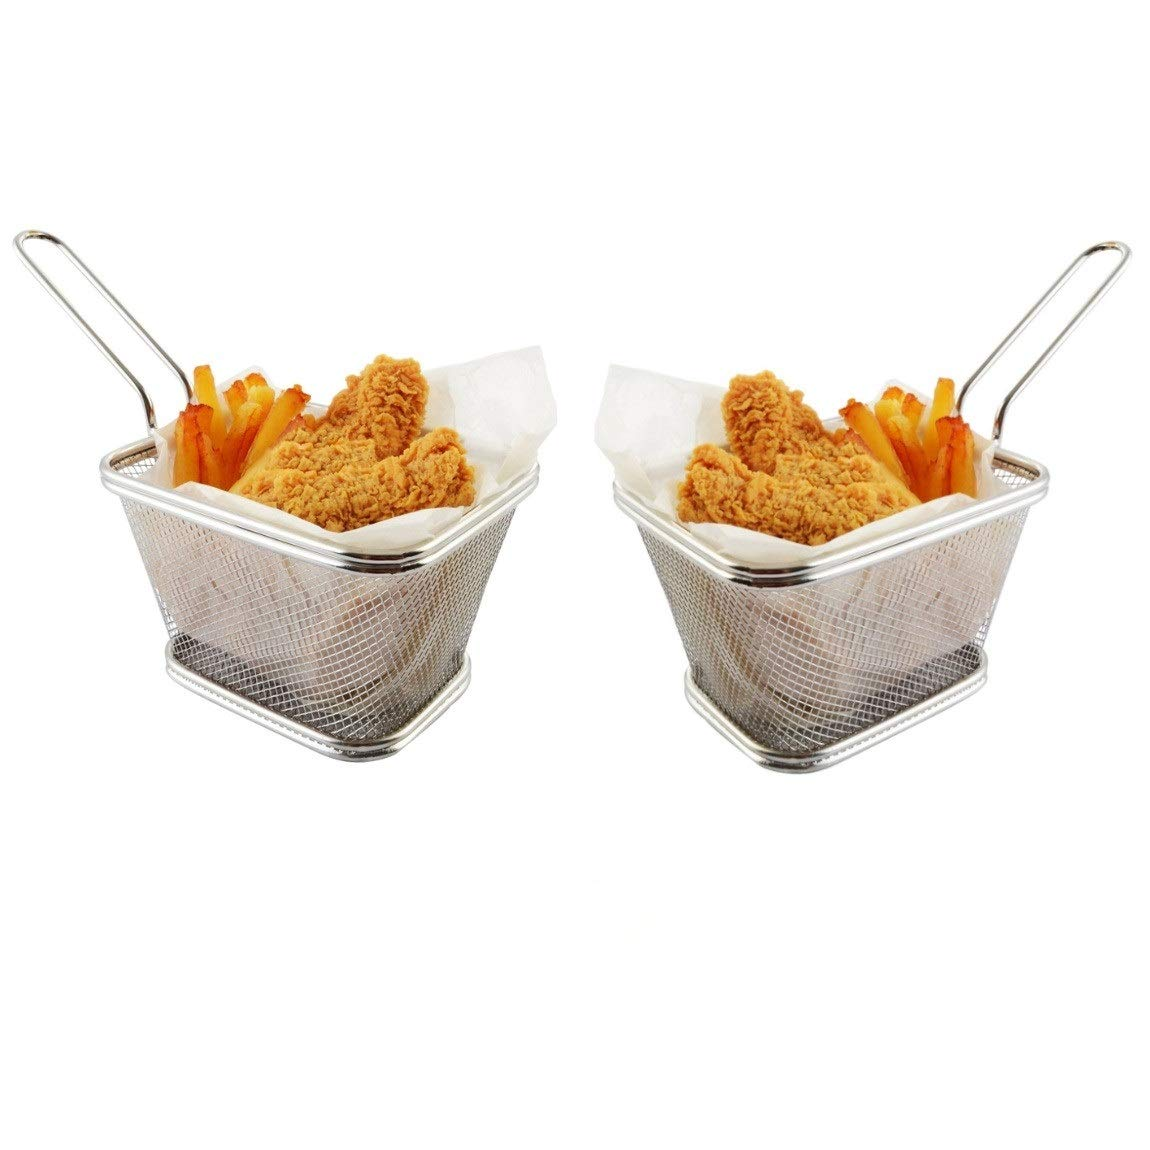 Stainless Steel Mini French Fries Basket Square Fryer Baskets, FDA Grade Kitchen Cooking Tool Food Presentation Tableware (Large 5inch 2pcs pack)